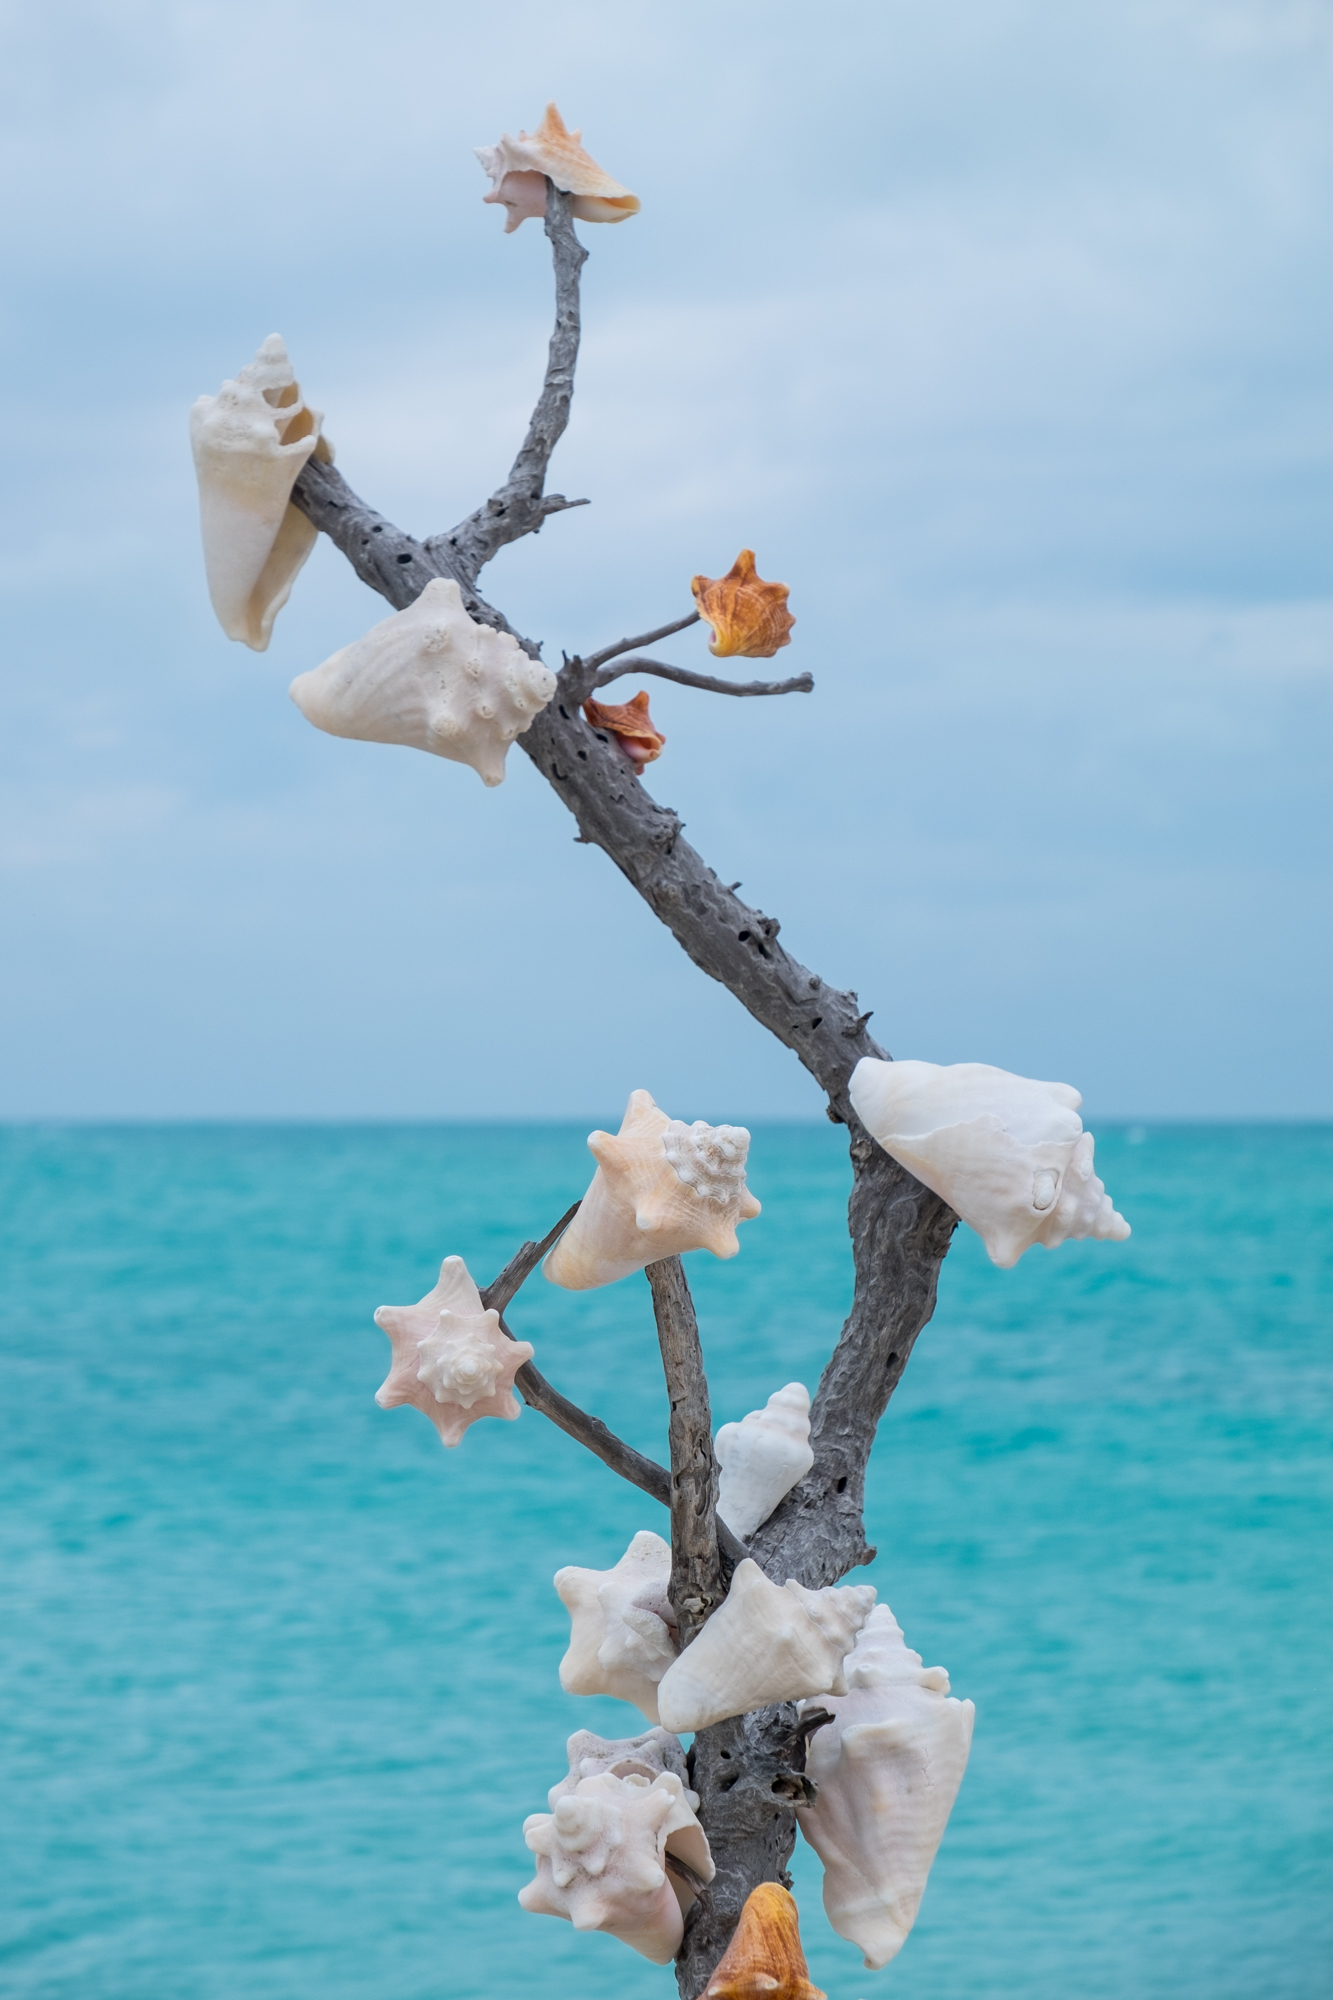 We found a tree adorned with conch shells.